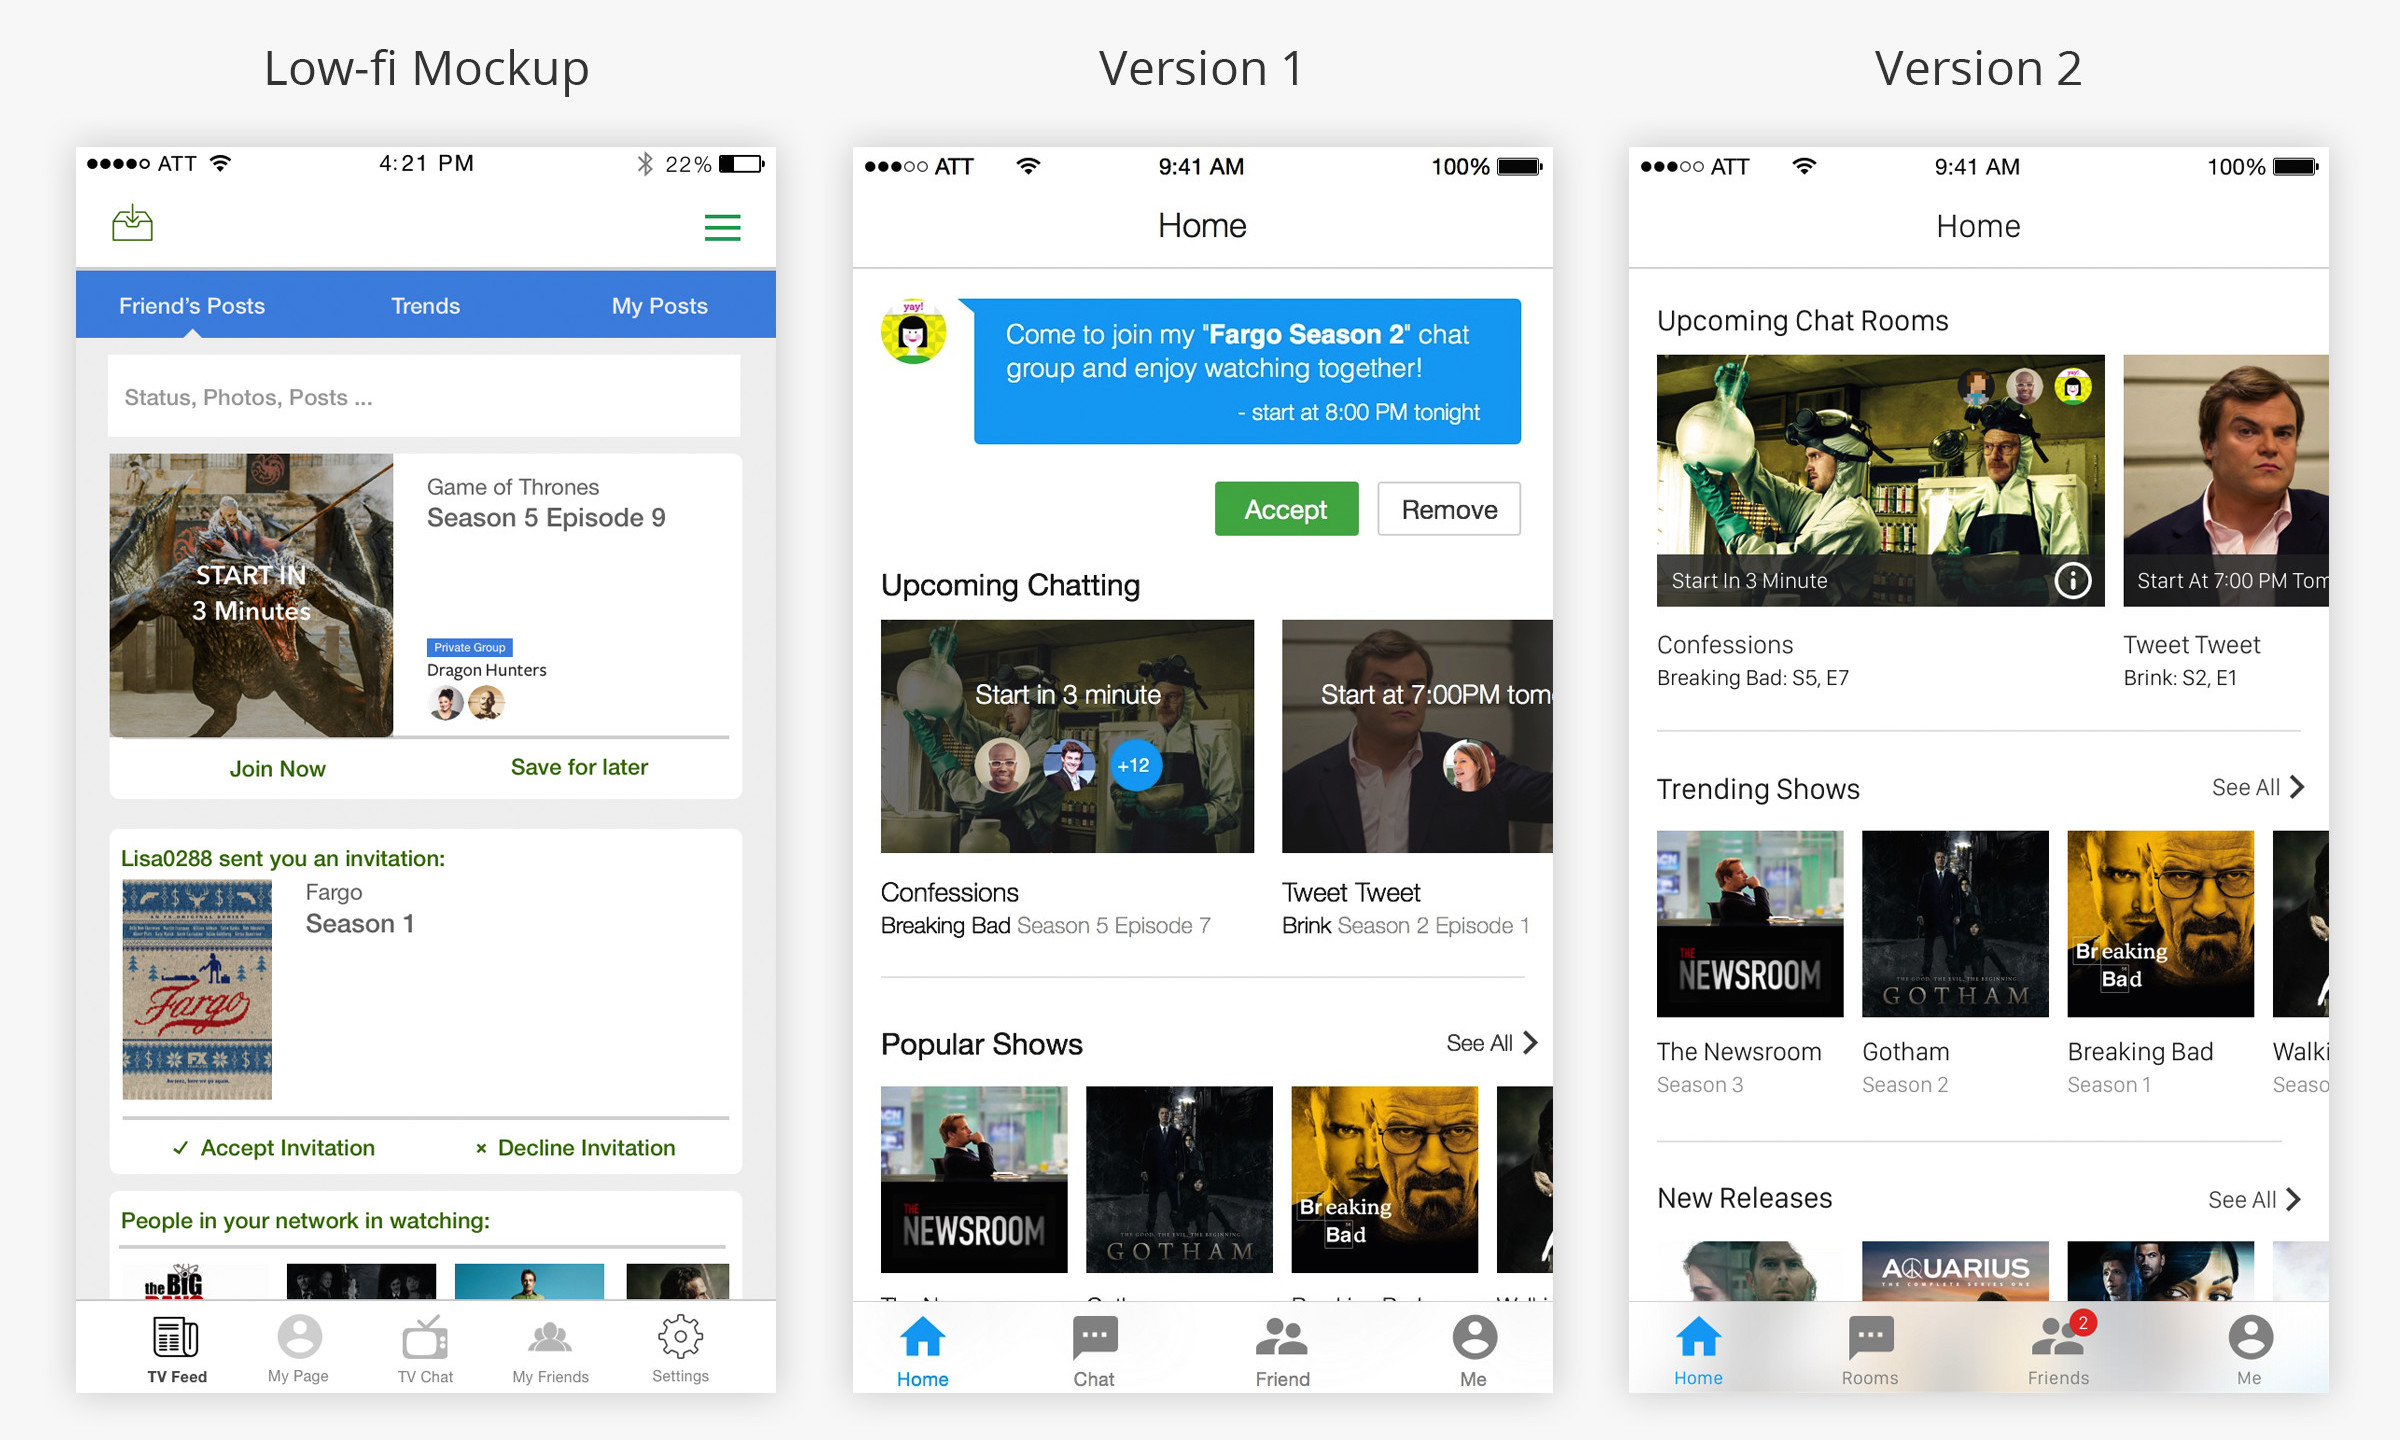 User Interface were iteratively improved during the design process to remove confusion and duplication for user interaction.  Home page  1. Users can post feeds on TV Feed page 2. Posting function was removed to prevent duplication with existing social media,and to narrow down our features to social interaction in private chat room. 3. Invitation's notification on Home page was moved to Friends page to clearly differentiate the functions of each page.